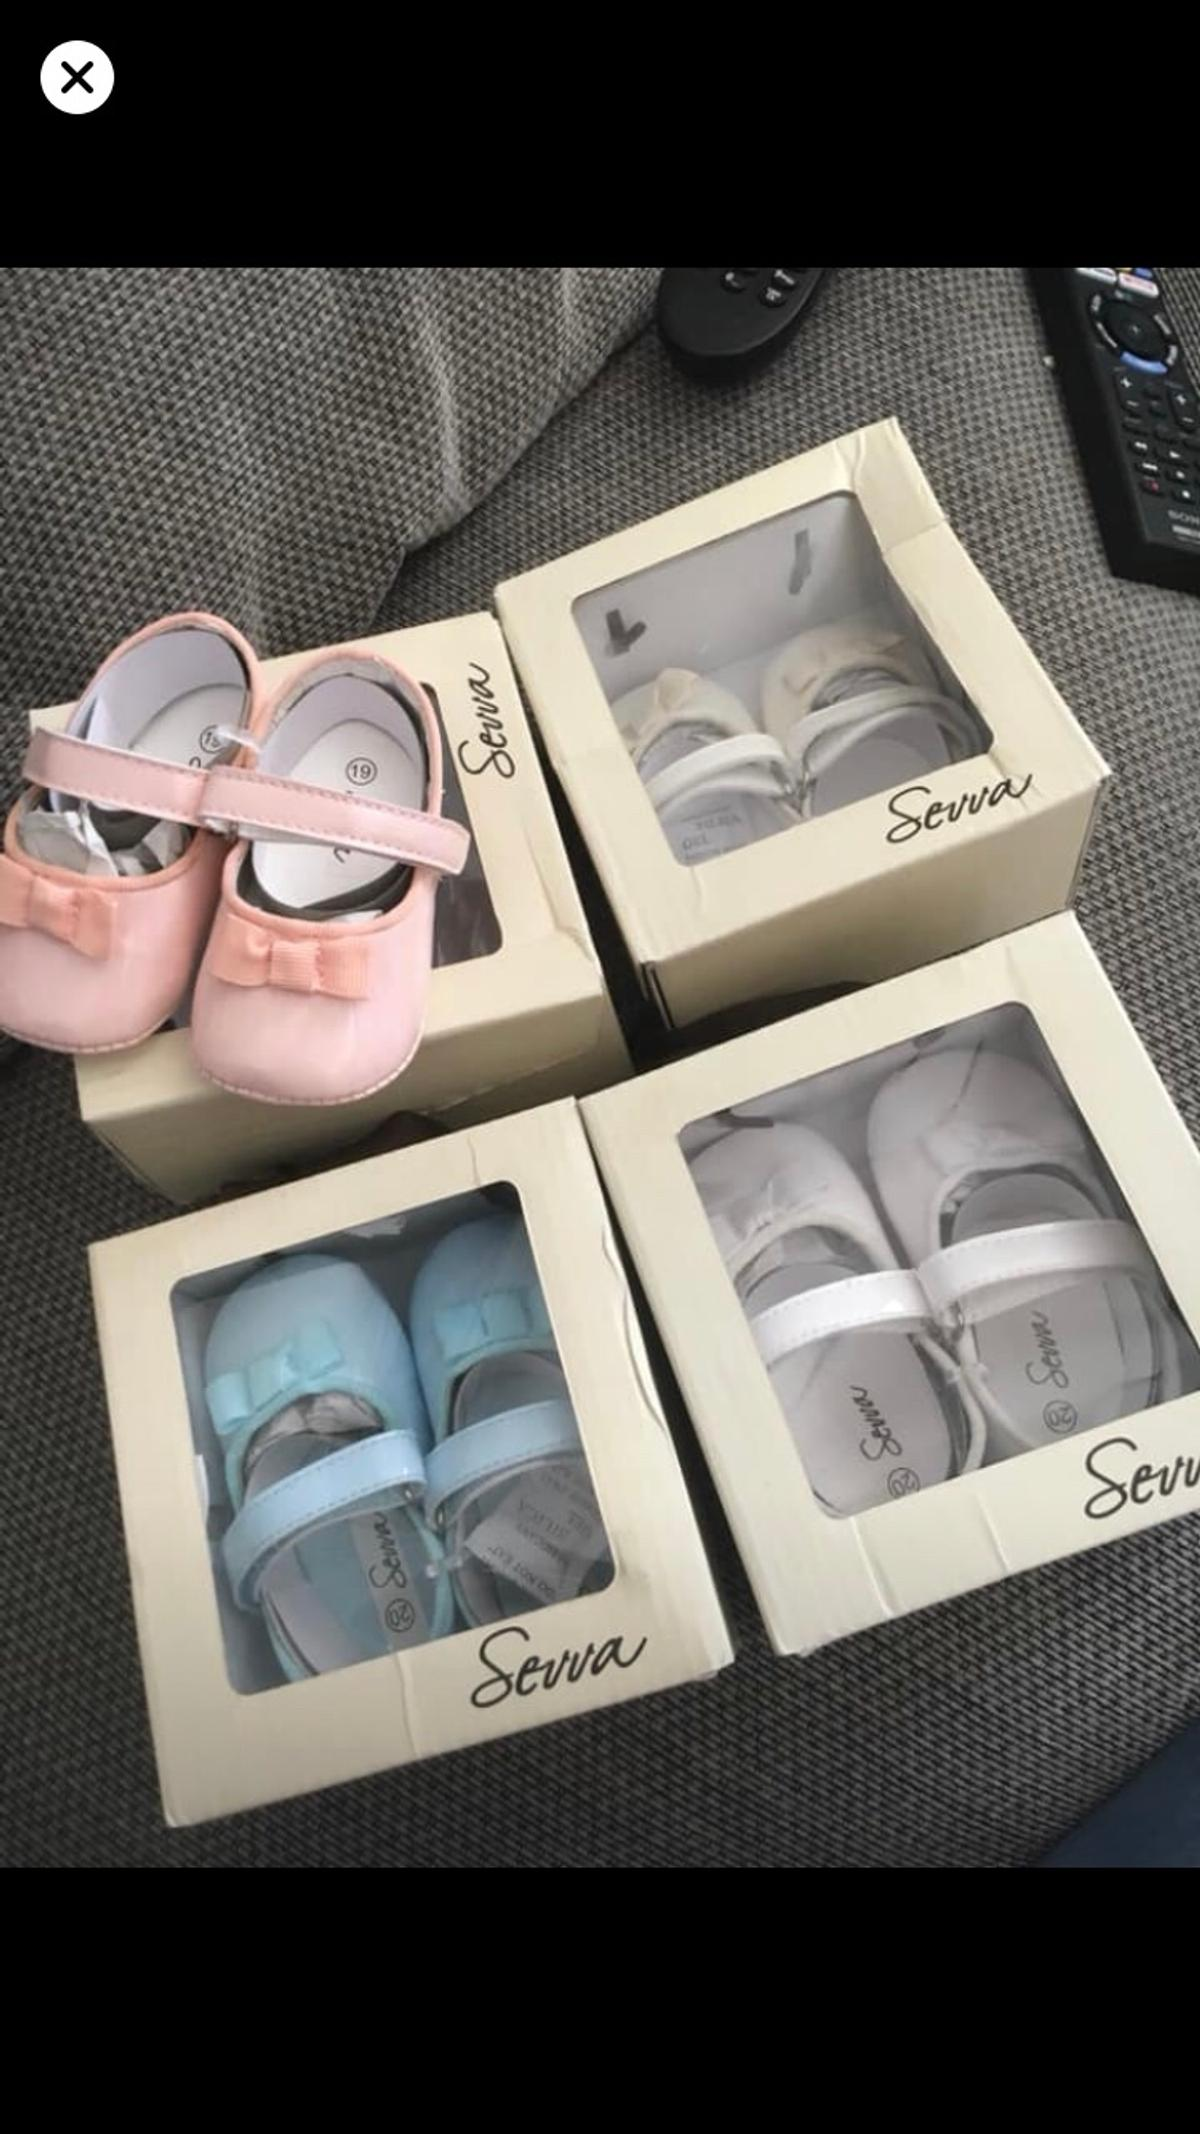 Sevva Spanish Baby Girls Pram Shoes  BRAND NEW IN BOX NEVER WORN  Pink & Cream Size 19 Baby Blue & White Size 20  Paid £12.99 per pair over £50 in total for the four pairs  Wanting  £6 each or £20 for all x